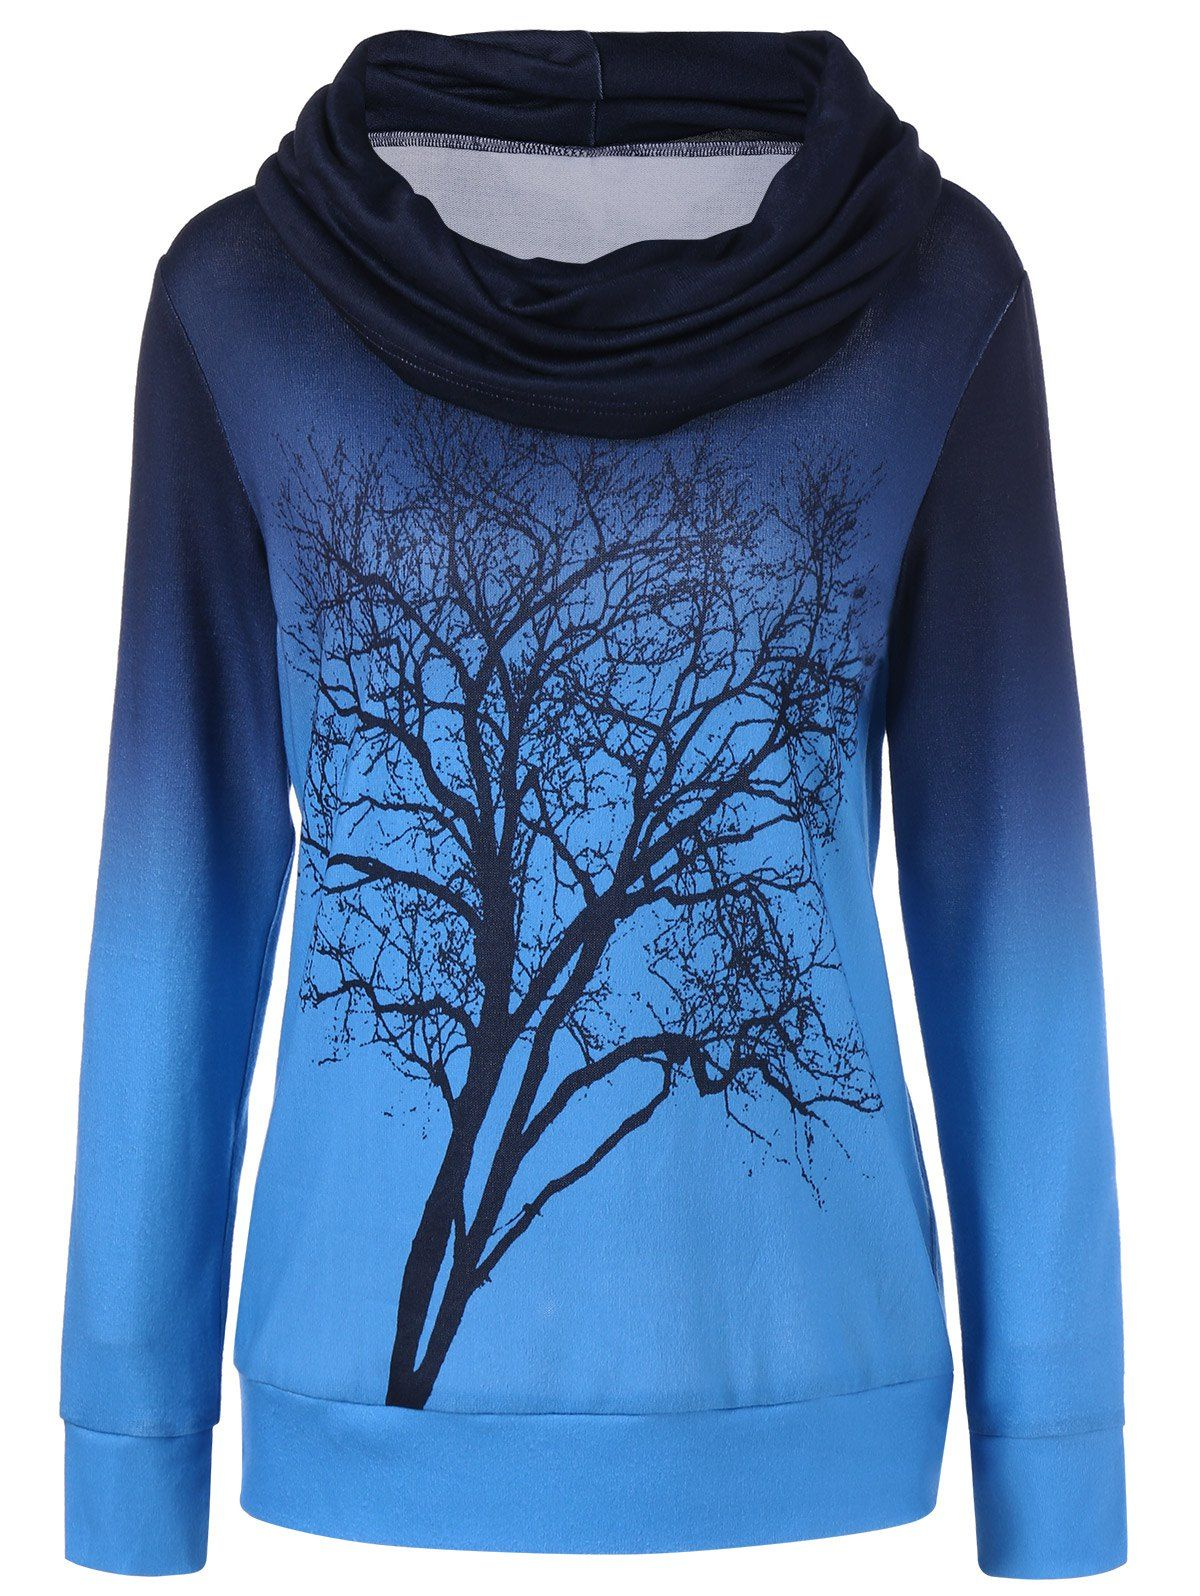 Ombre Tree Print Cowl Neck Sweatshirt | Tree print, Cowl neck and ...